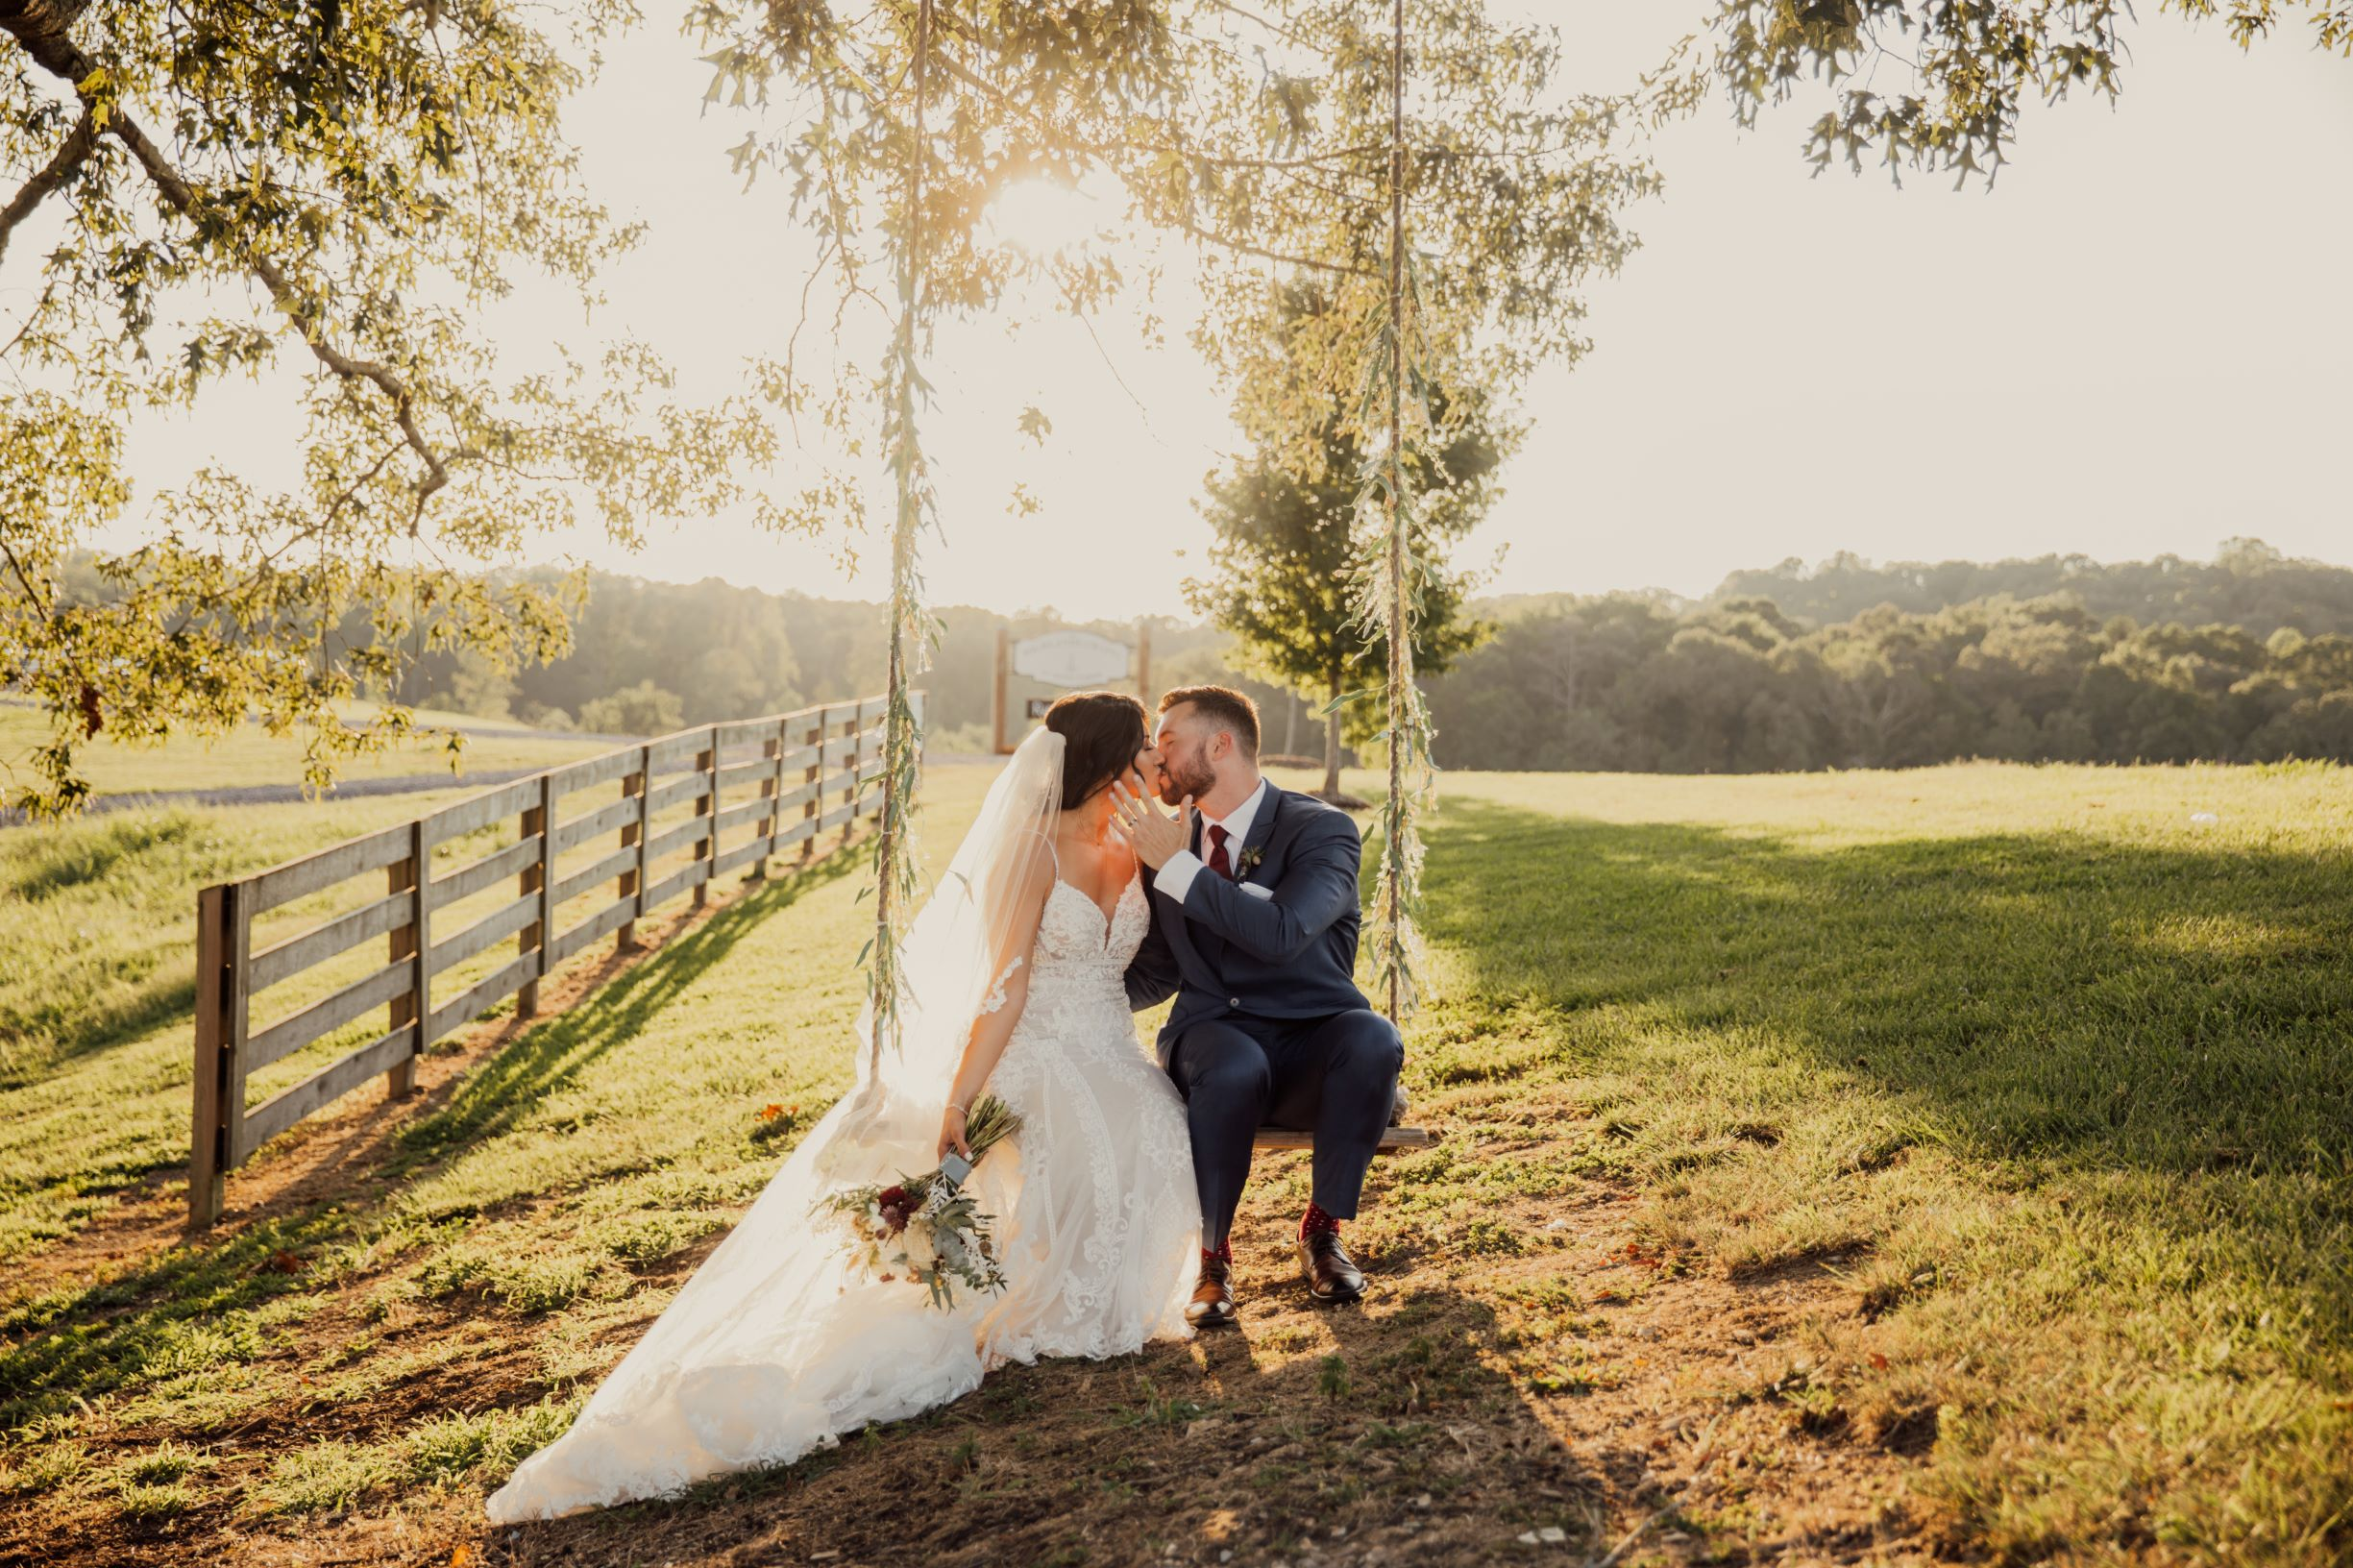 You won't believe the amazing photo ops you'll have at our beautiful Chattanooga wedding venue.